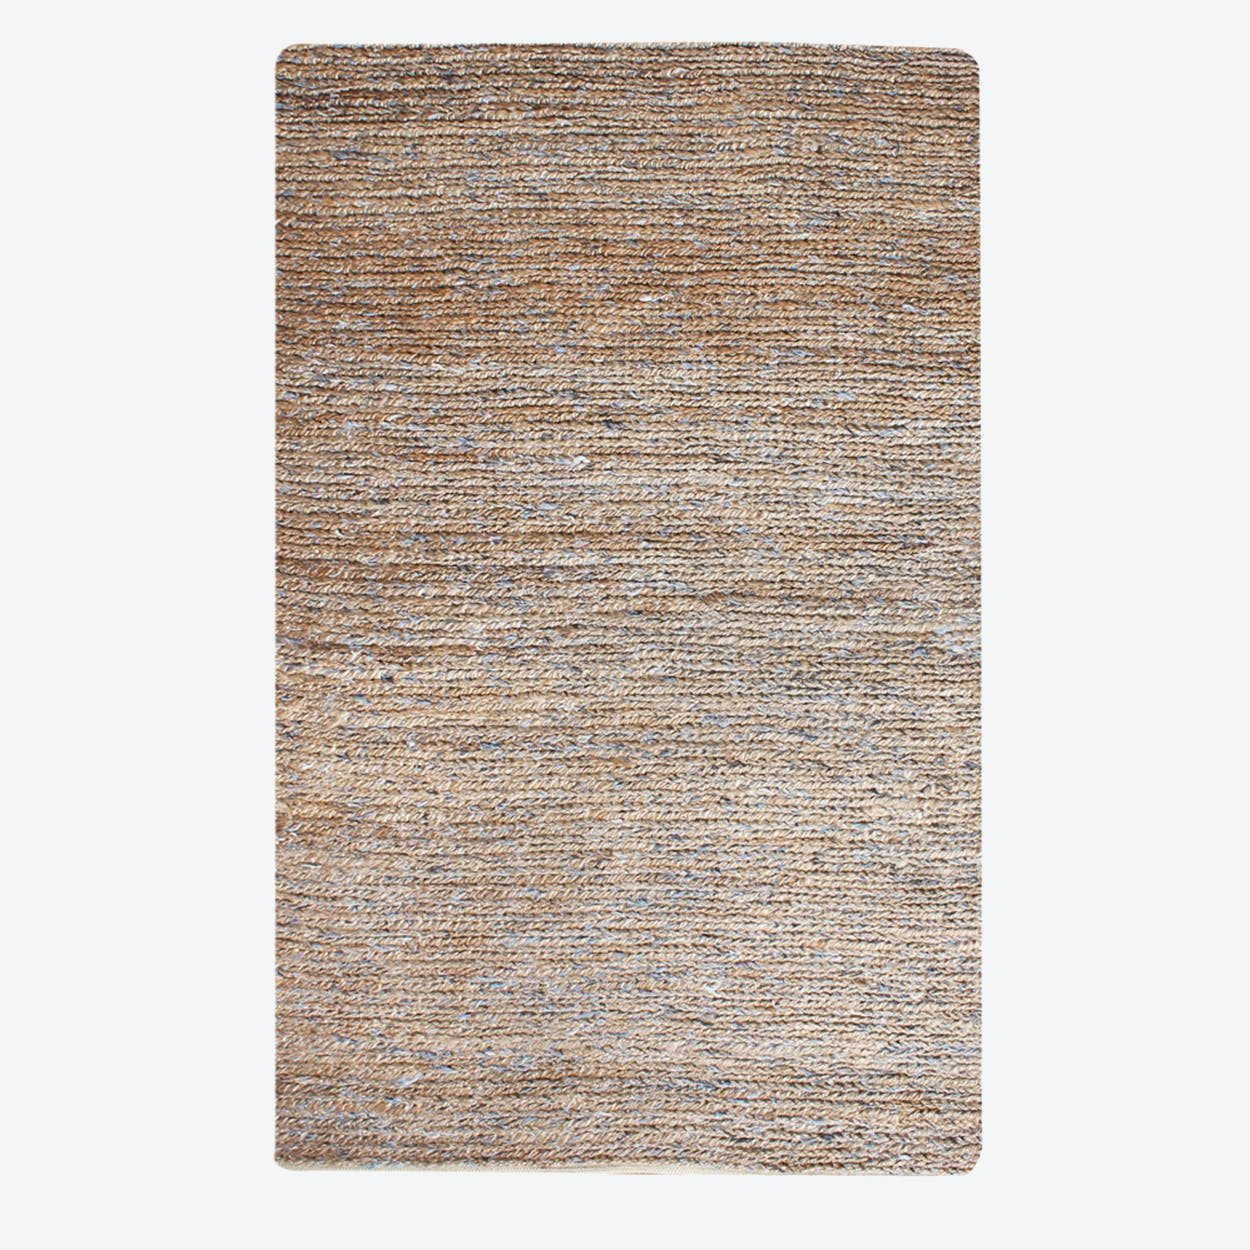 PARRY Rug in Natural/Grey